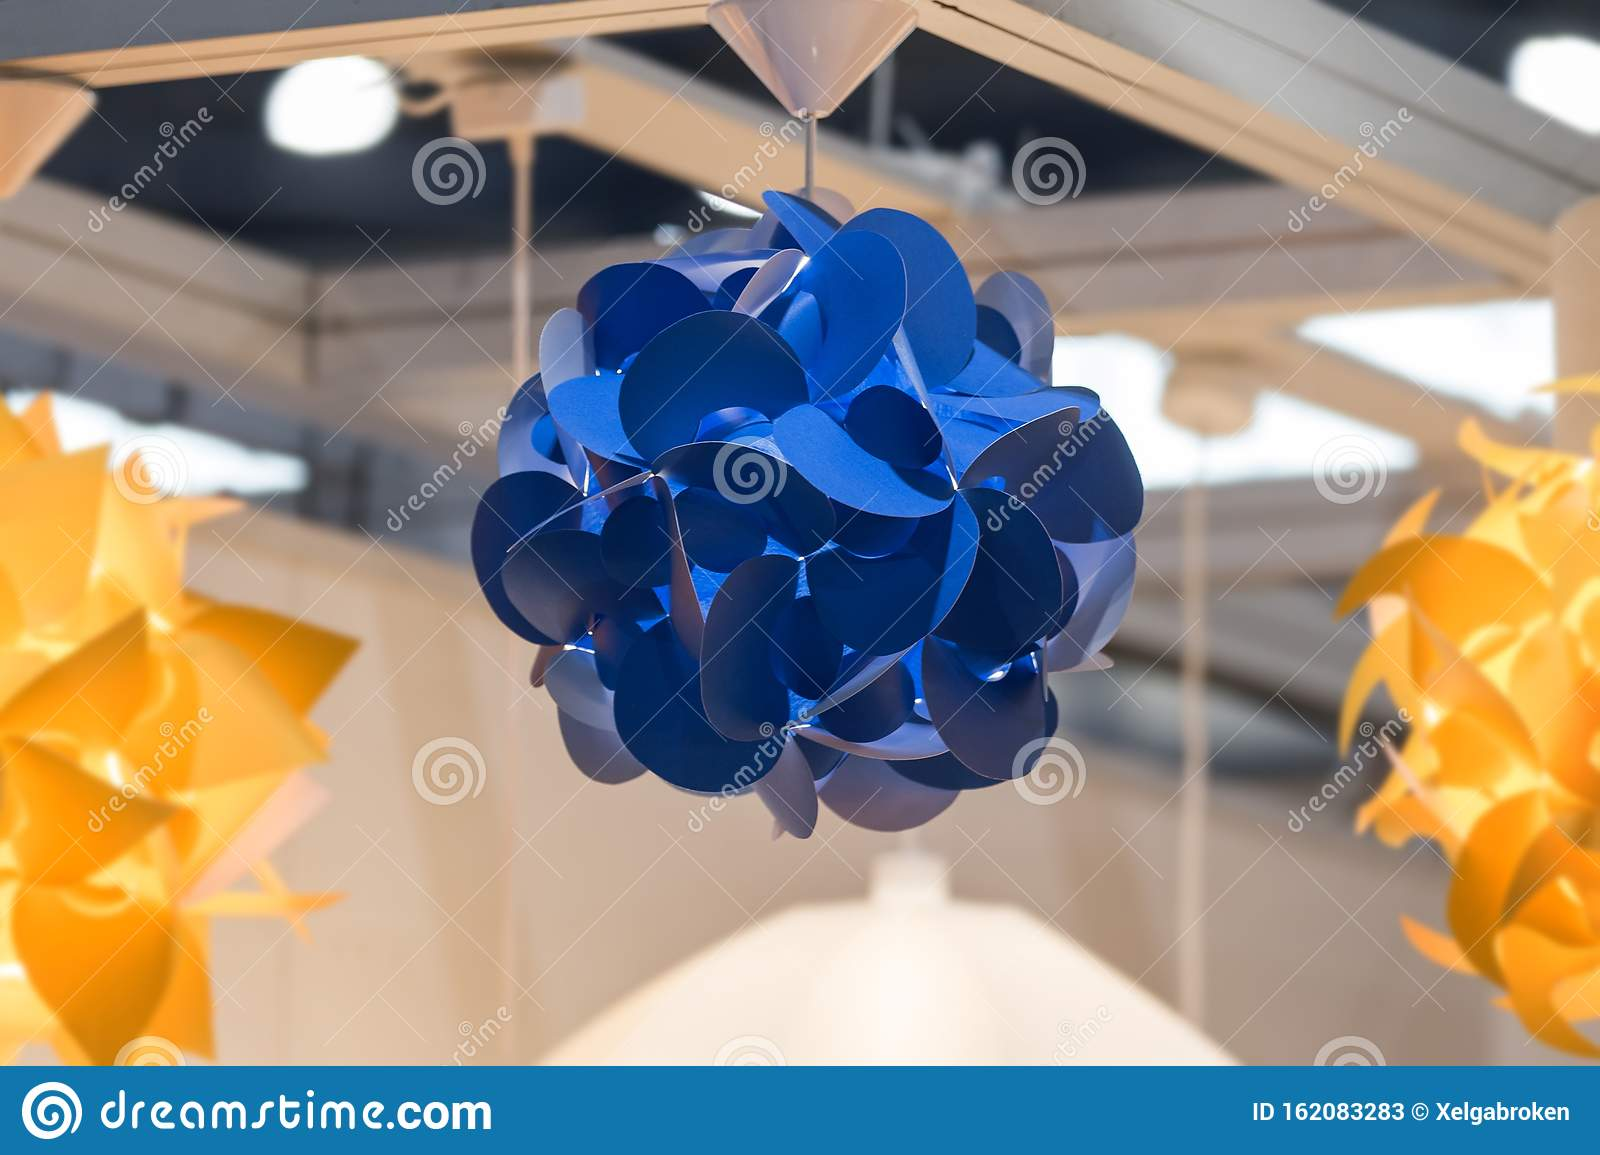 Blue Modern Pendant Light Paper Chandelier In Scandinavian Nordic Style Chandelier Made With Plastic With Several Geometric Stock Image Image Of Interior Detail 162083283